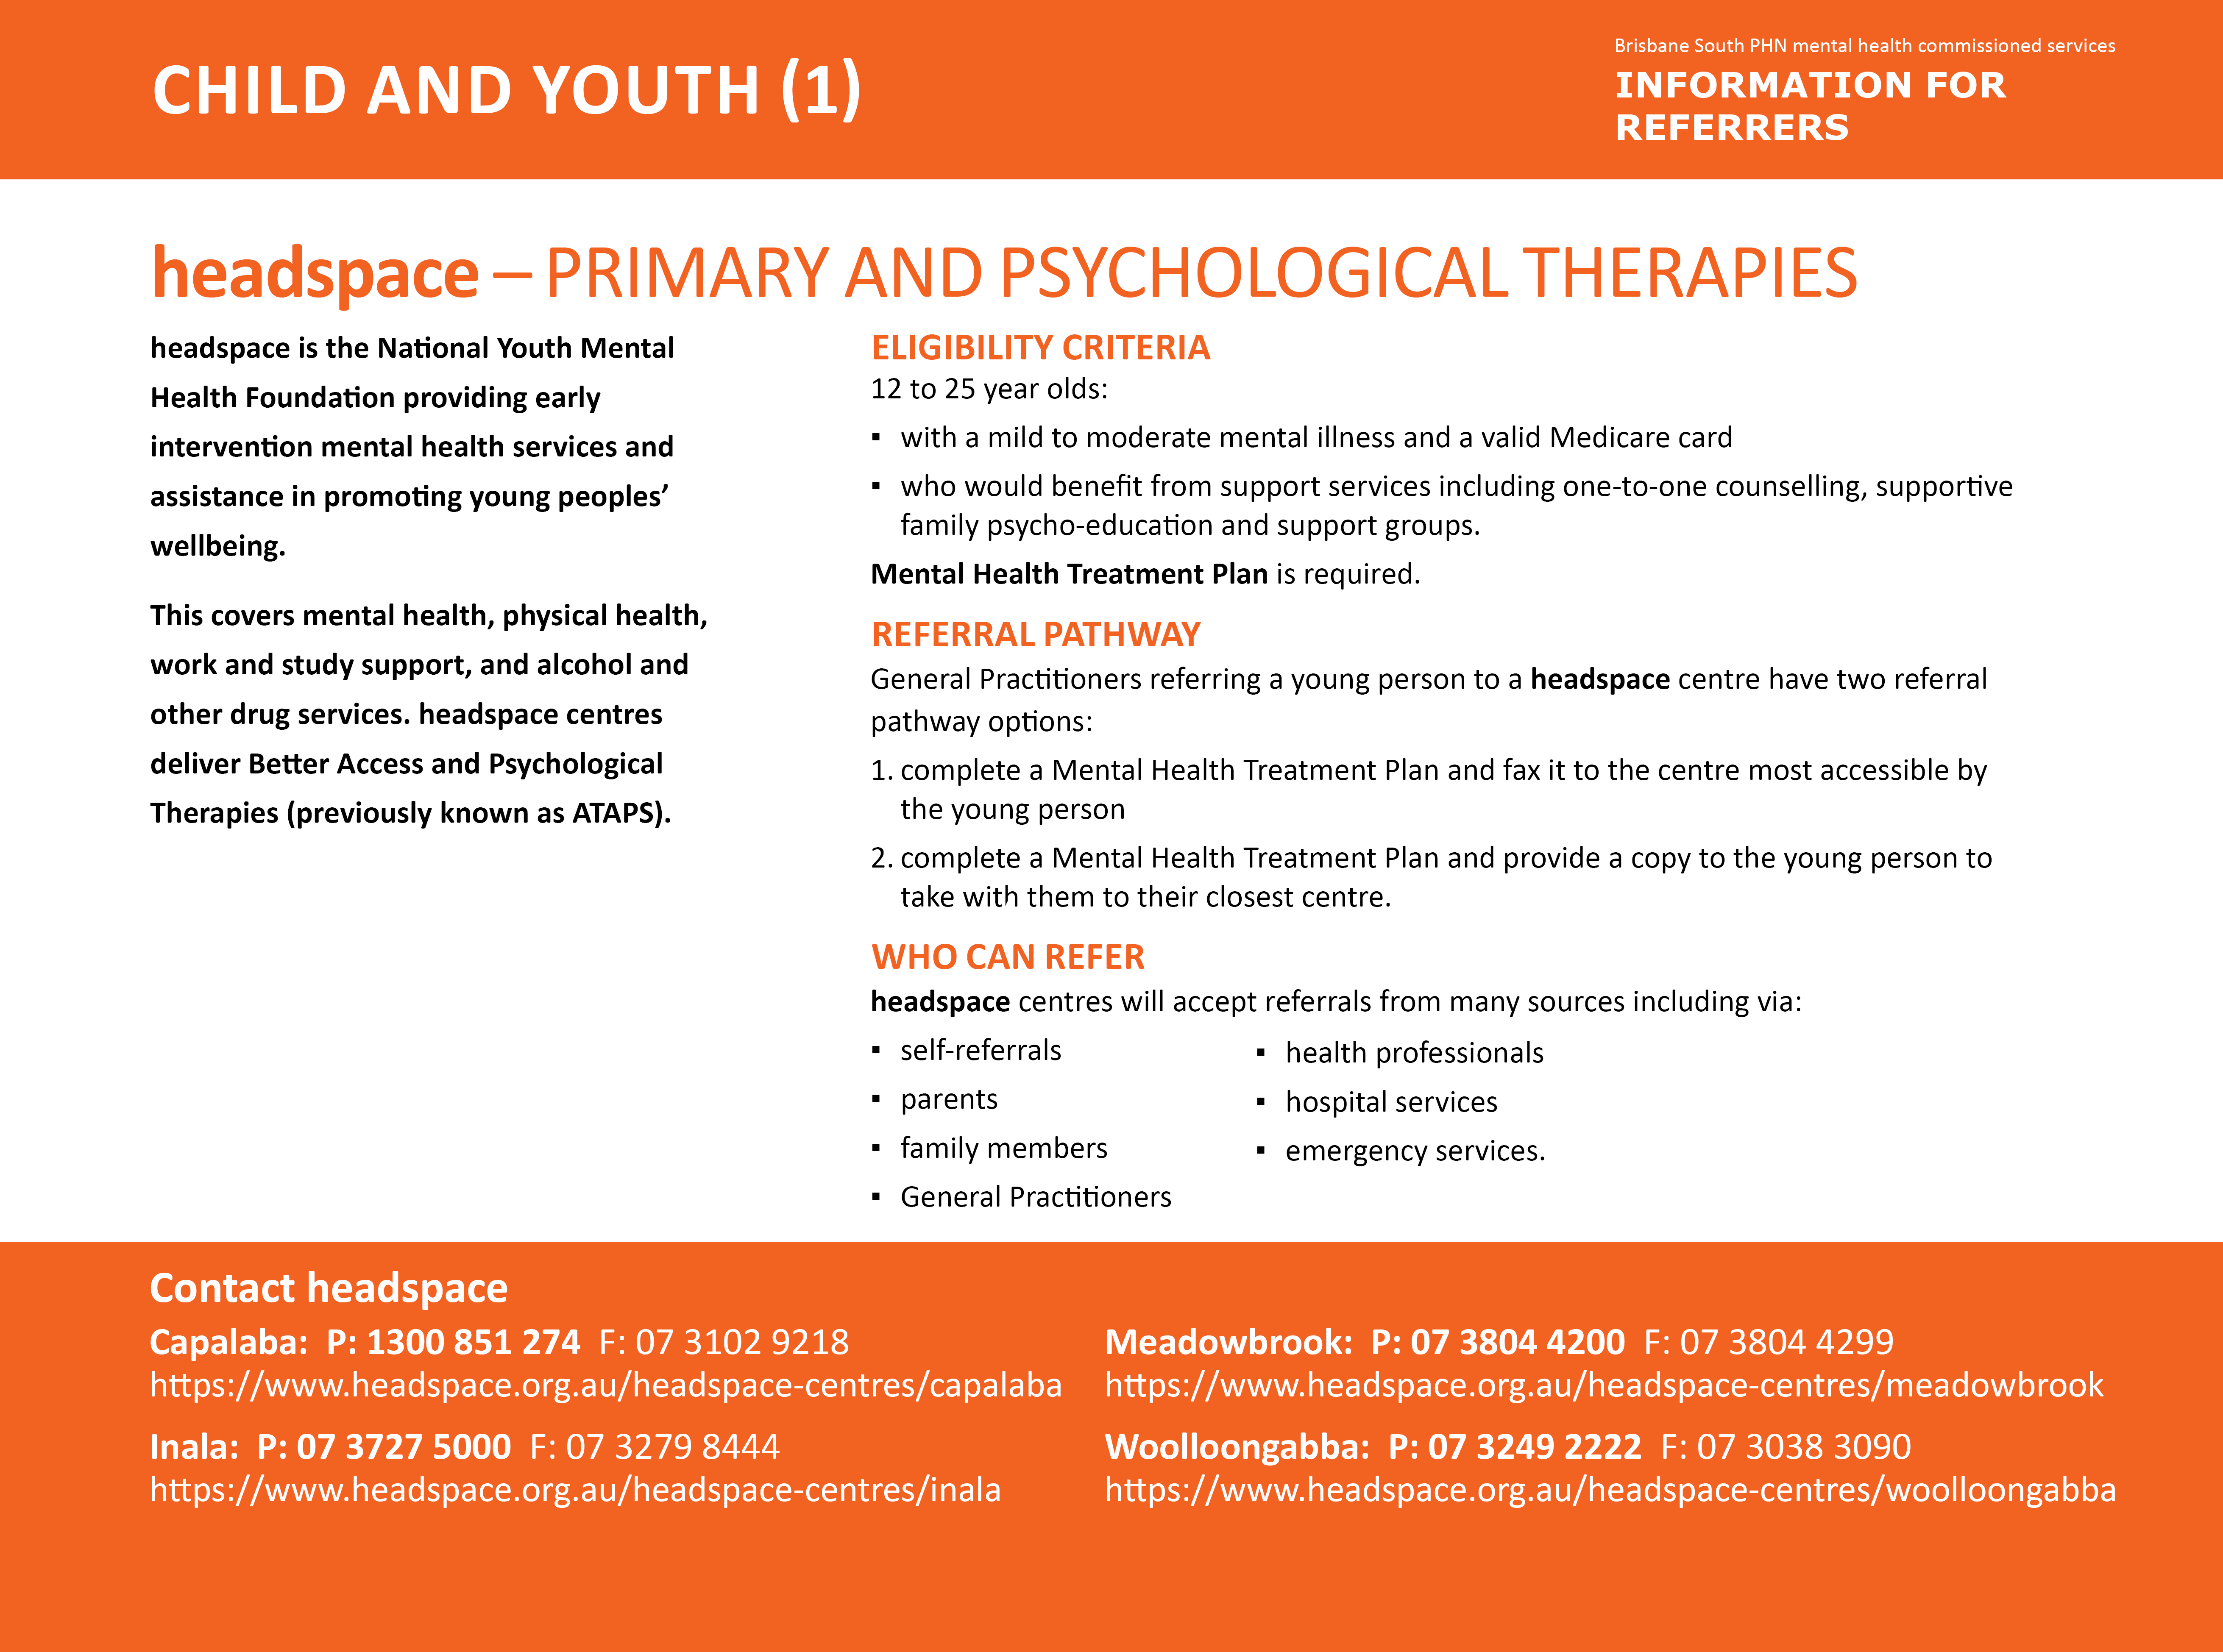 headspace - Primary and Psychological Therapies